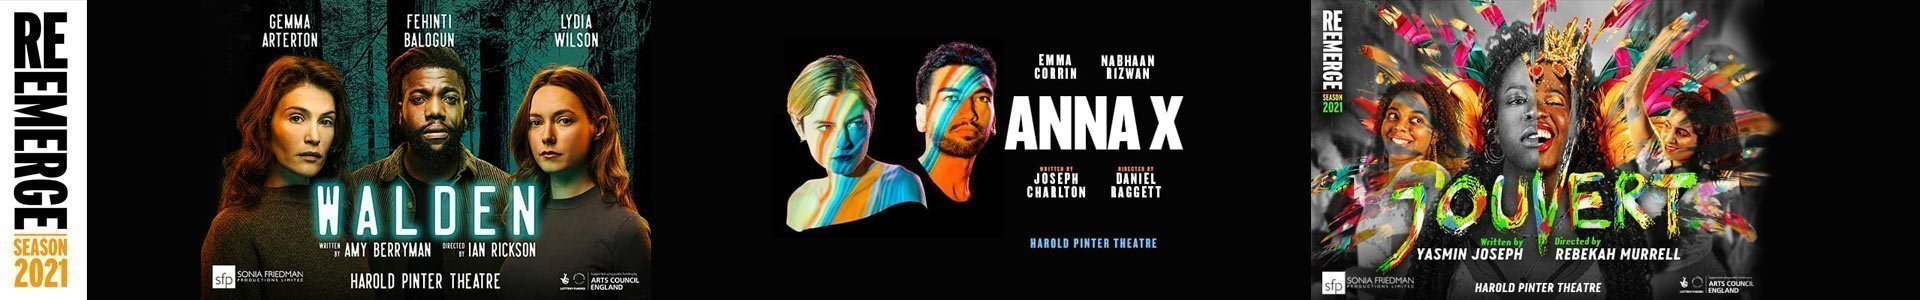 Re: Emerge Tickets - Harold Pinter Theatre